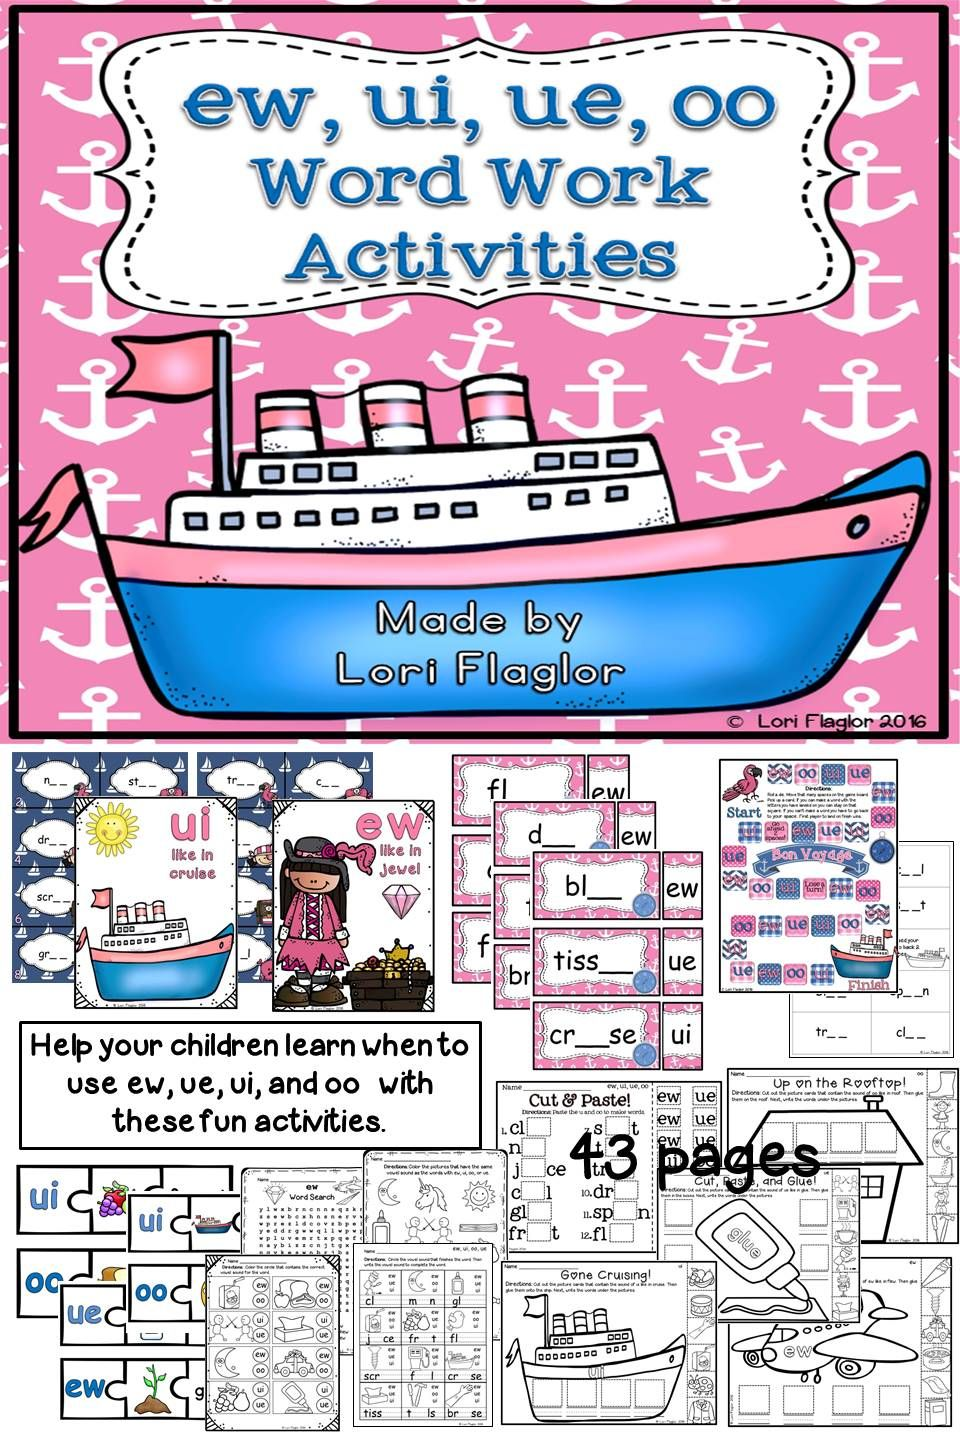 43 Pages packed full of activities to teach ew, ue, ui,or oo spelling patterns. Check it out!